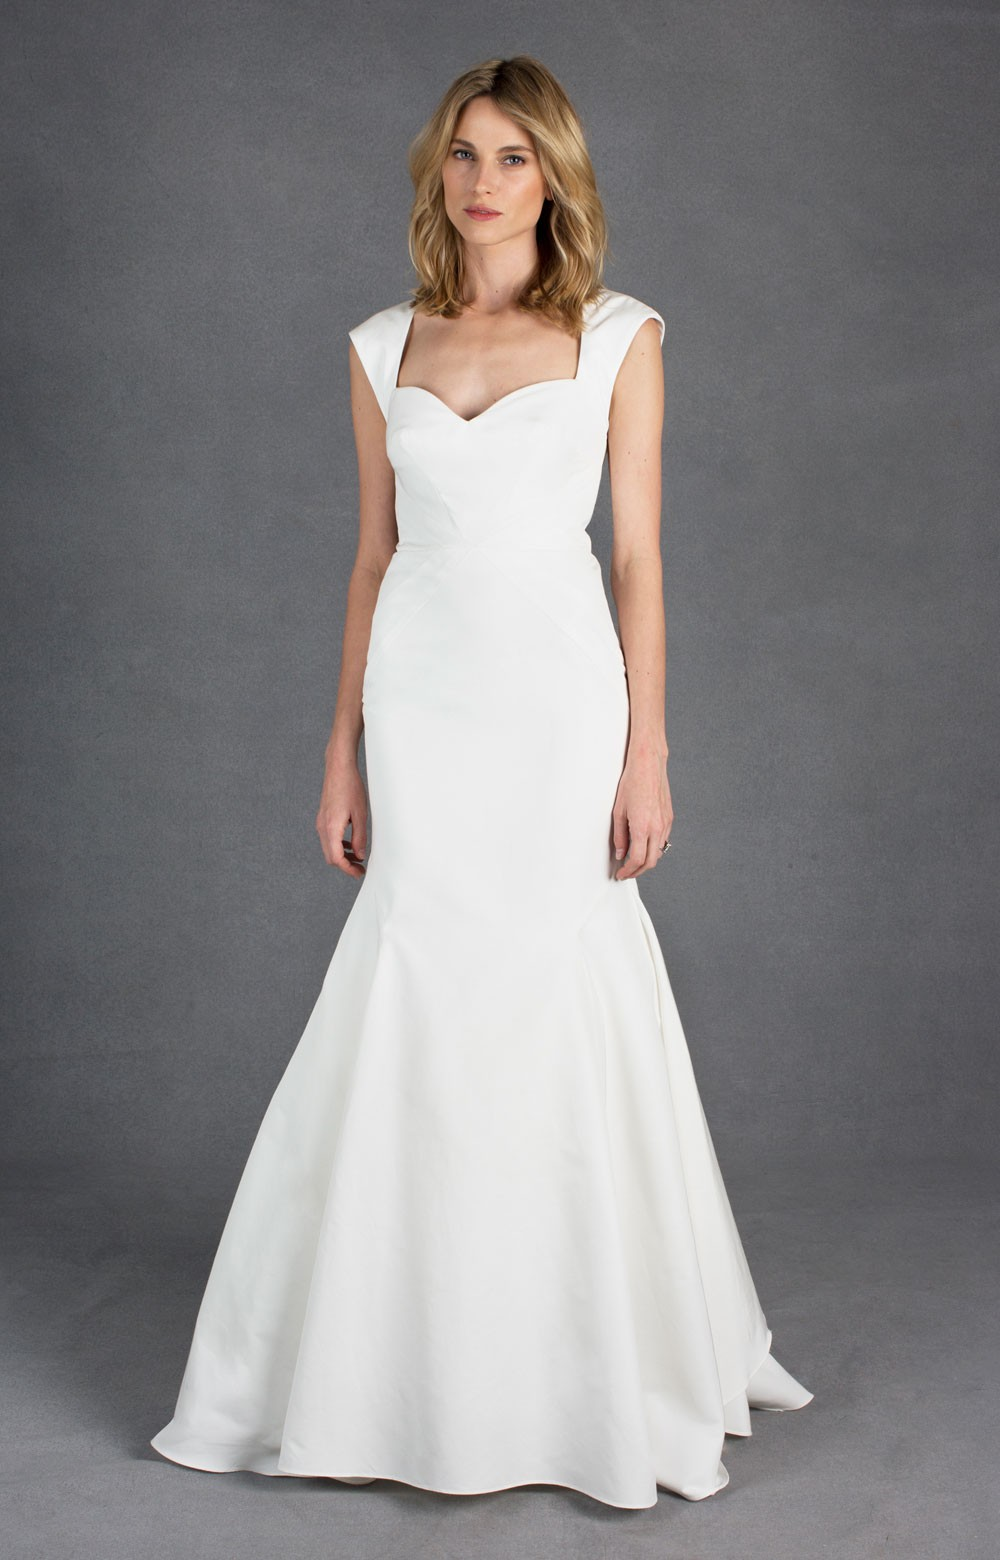 Lyst  Nicole Miller Jane Bridal Gown in White